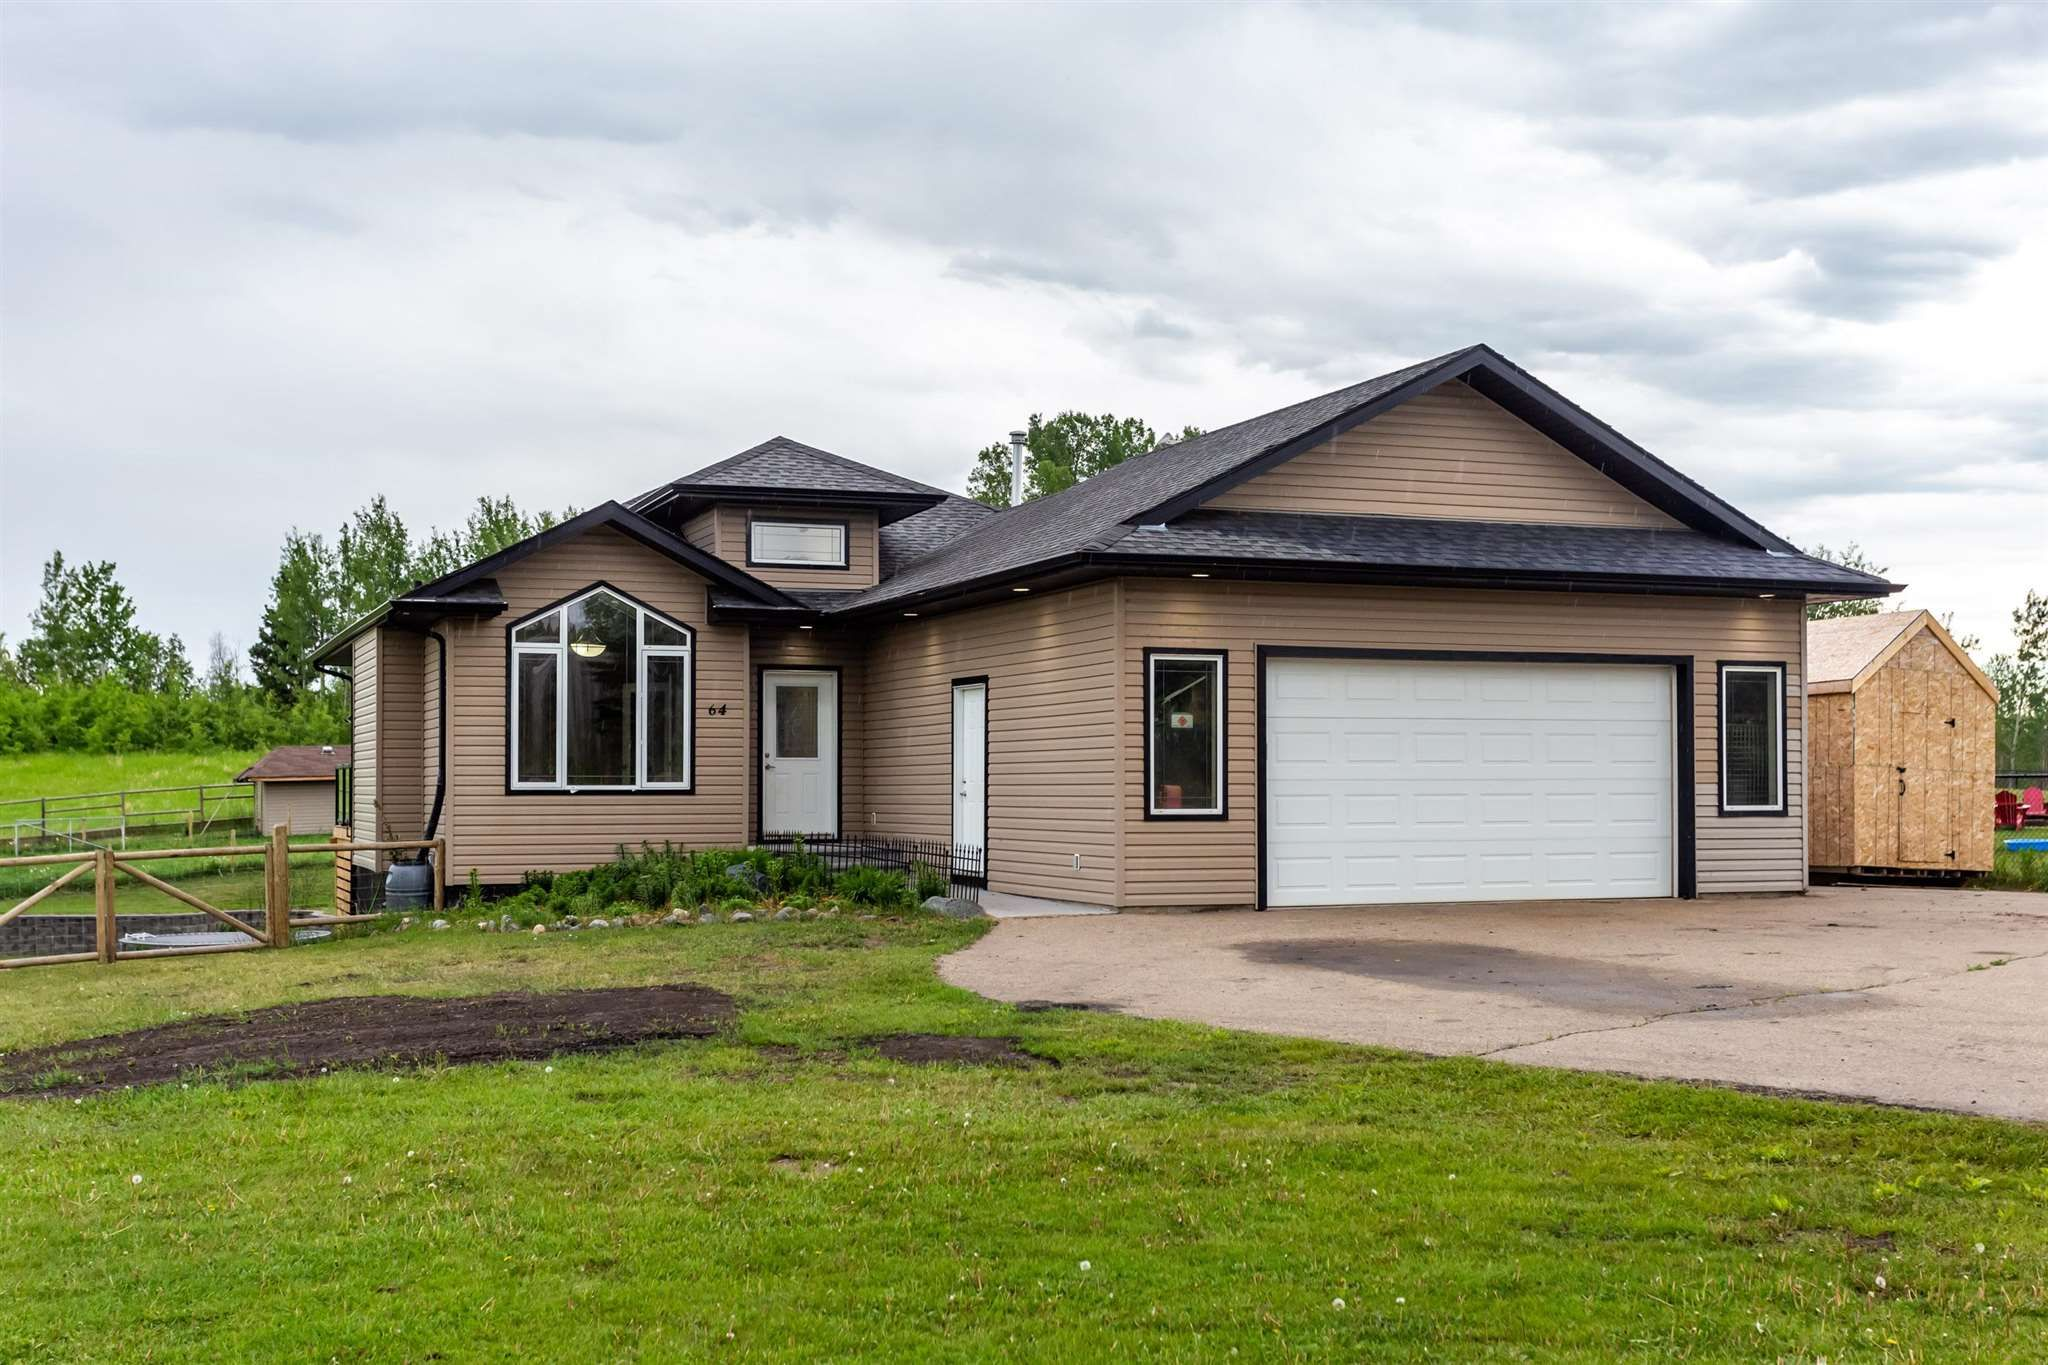 Main Photo: 64 Willowview Boulevard: Rural Parkland County House for sale : MLS®# E4249969